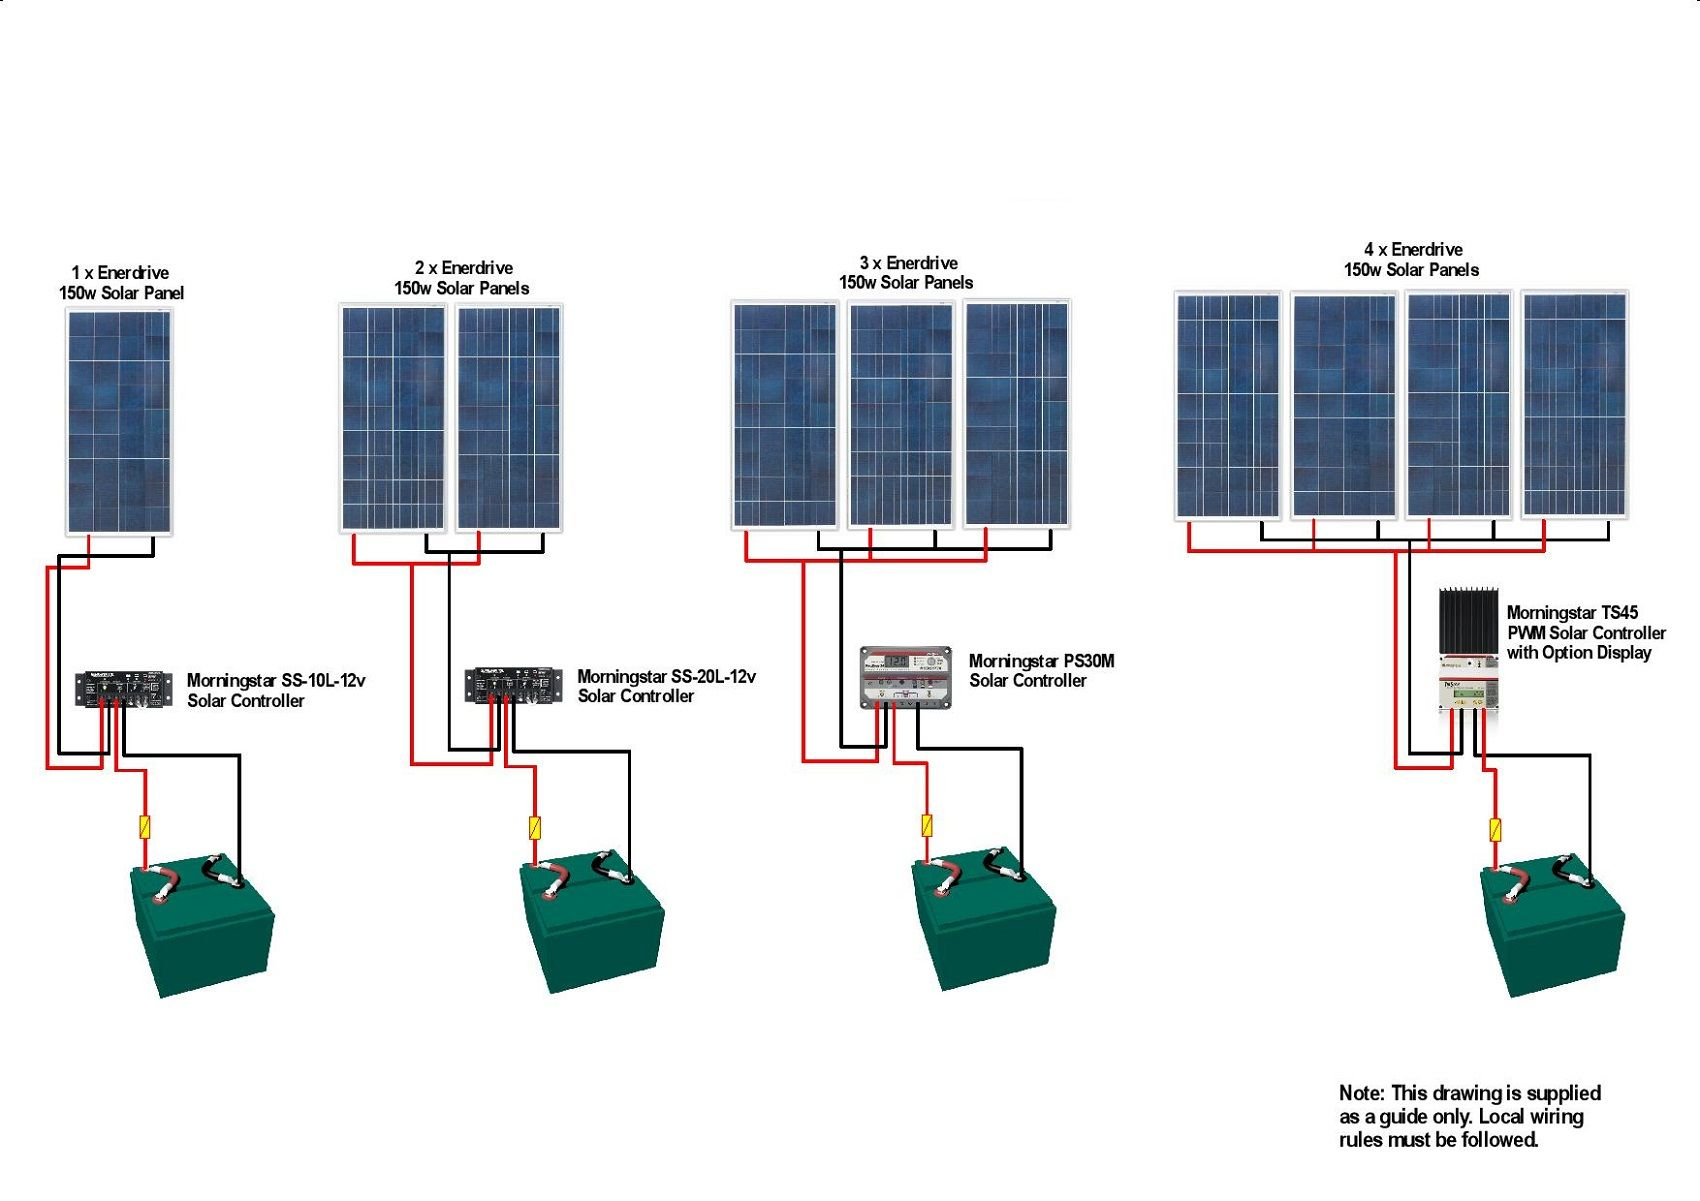 bp solar panels wiring diagram solar panel diagrams to print hq solar panel wiring diagram 24 volt solar panels wiring diagram 3 [ 1700 x 1201 Pixel ]